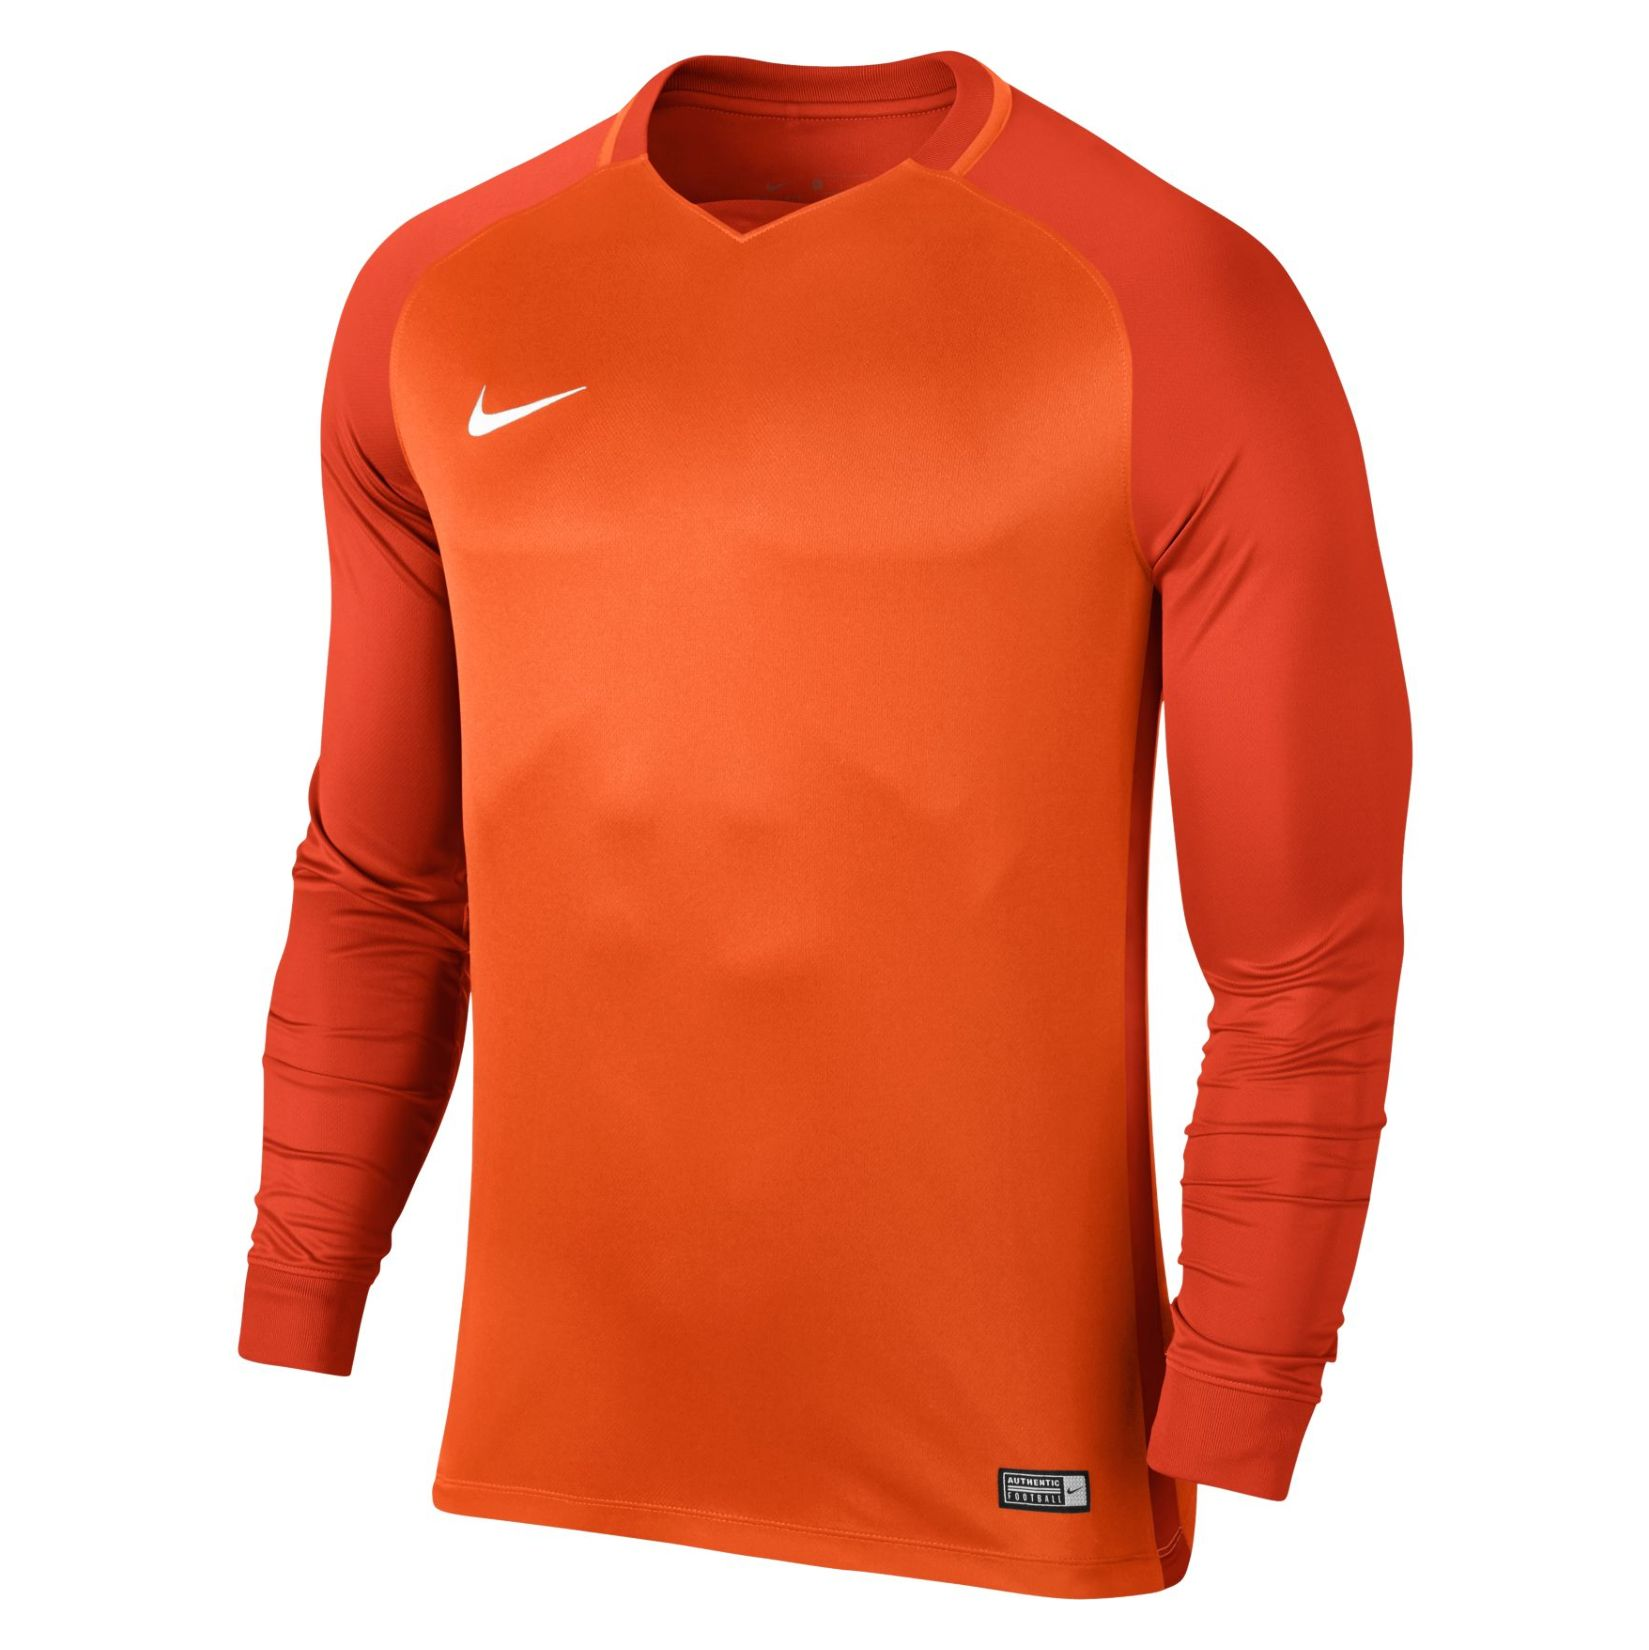 Nike Trophy III Long Sleeve Football Jersey Safety Orange-Team Orange-Team Orange-White